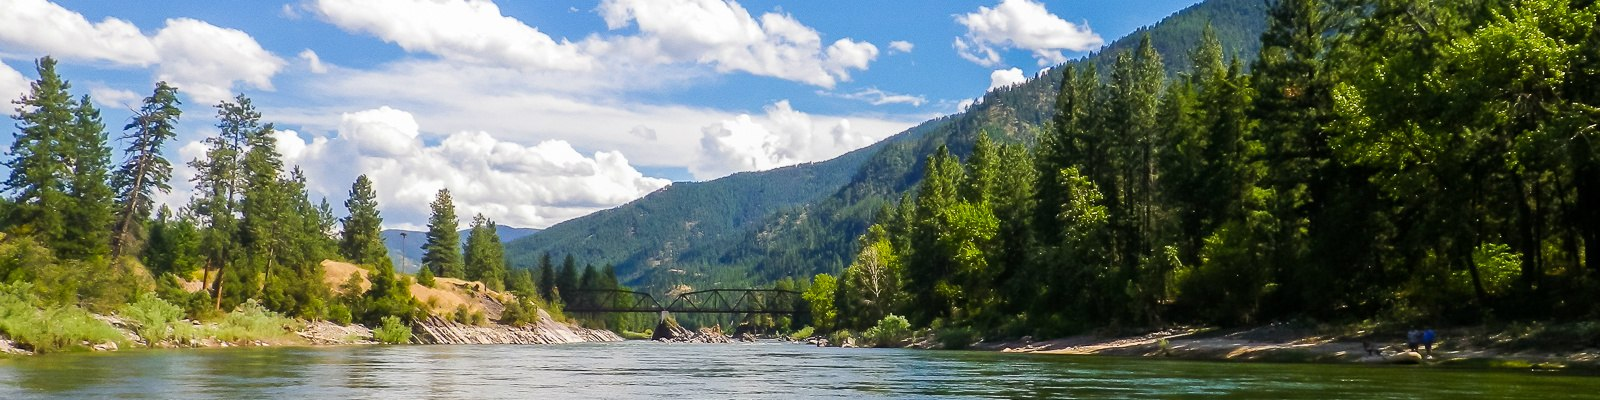 Missoula Montana Fly Fishing Guides-Clark Fork